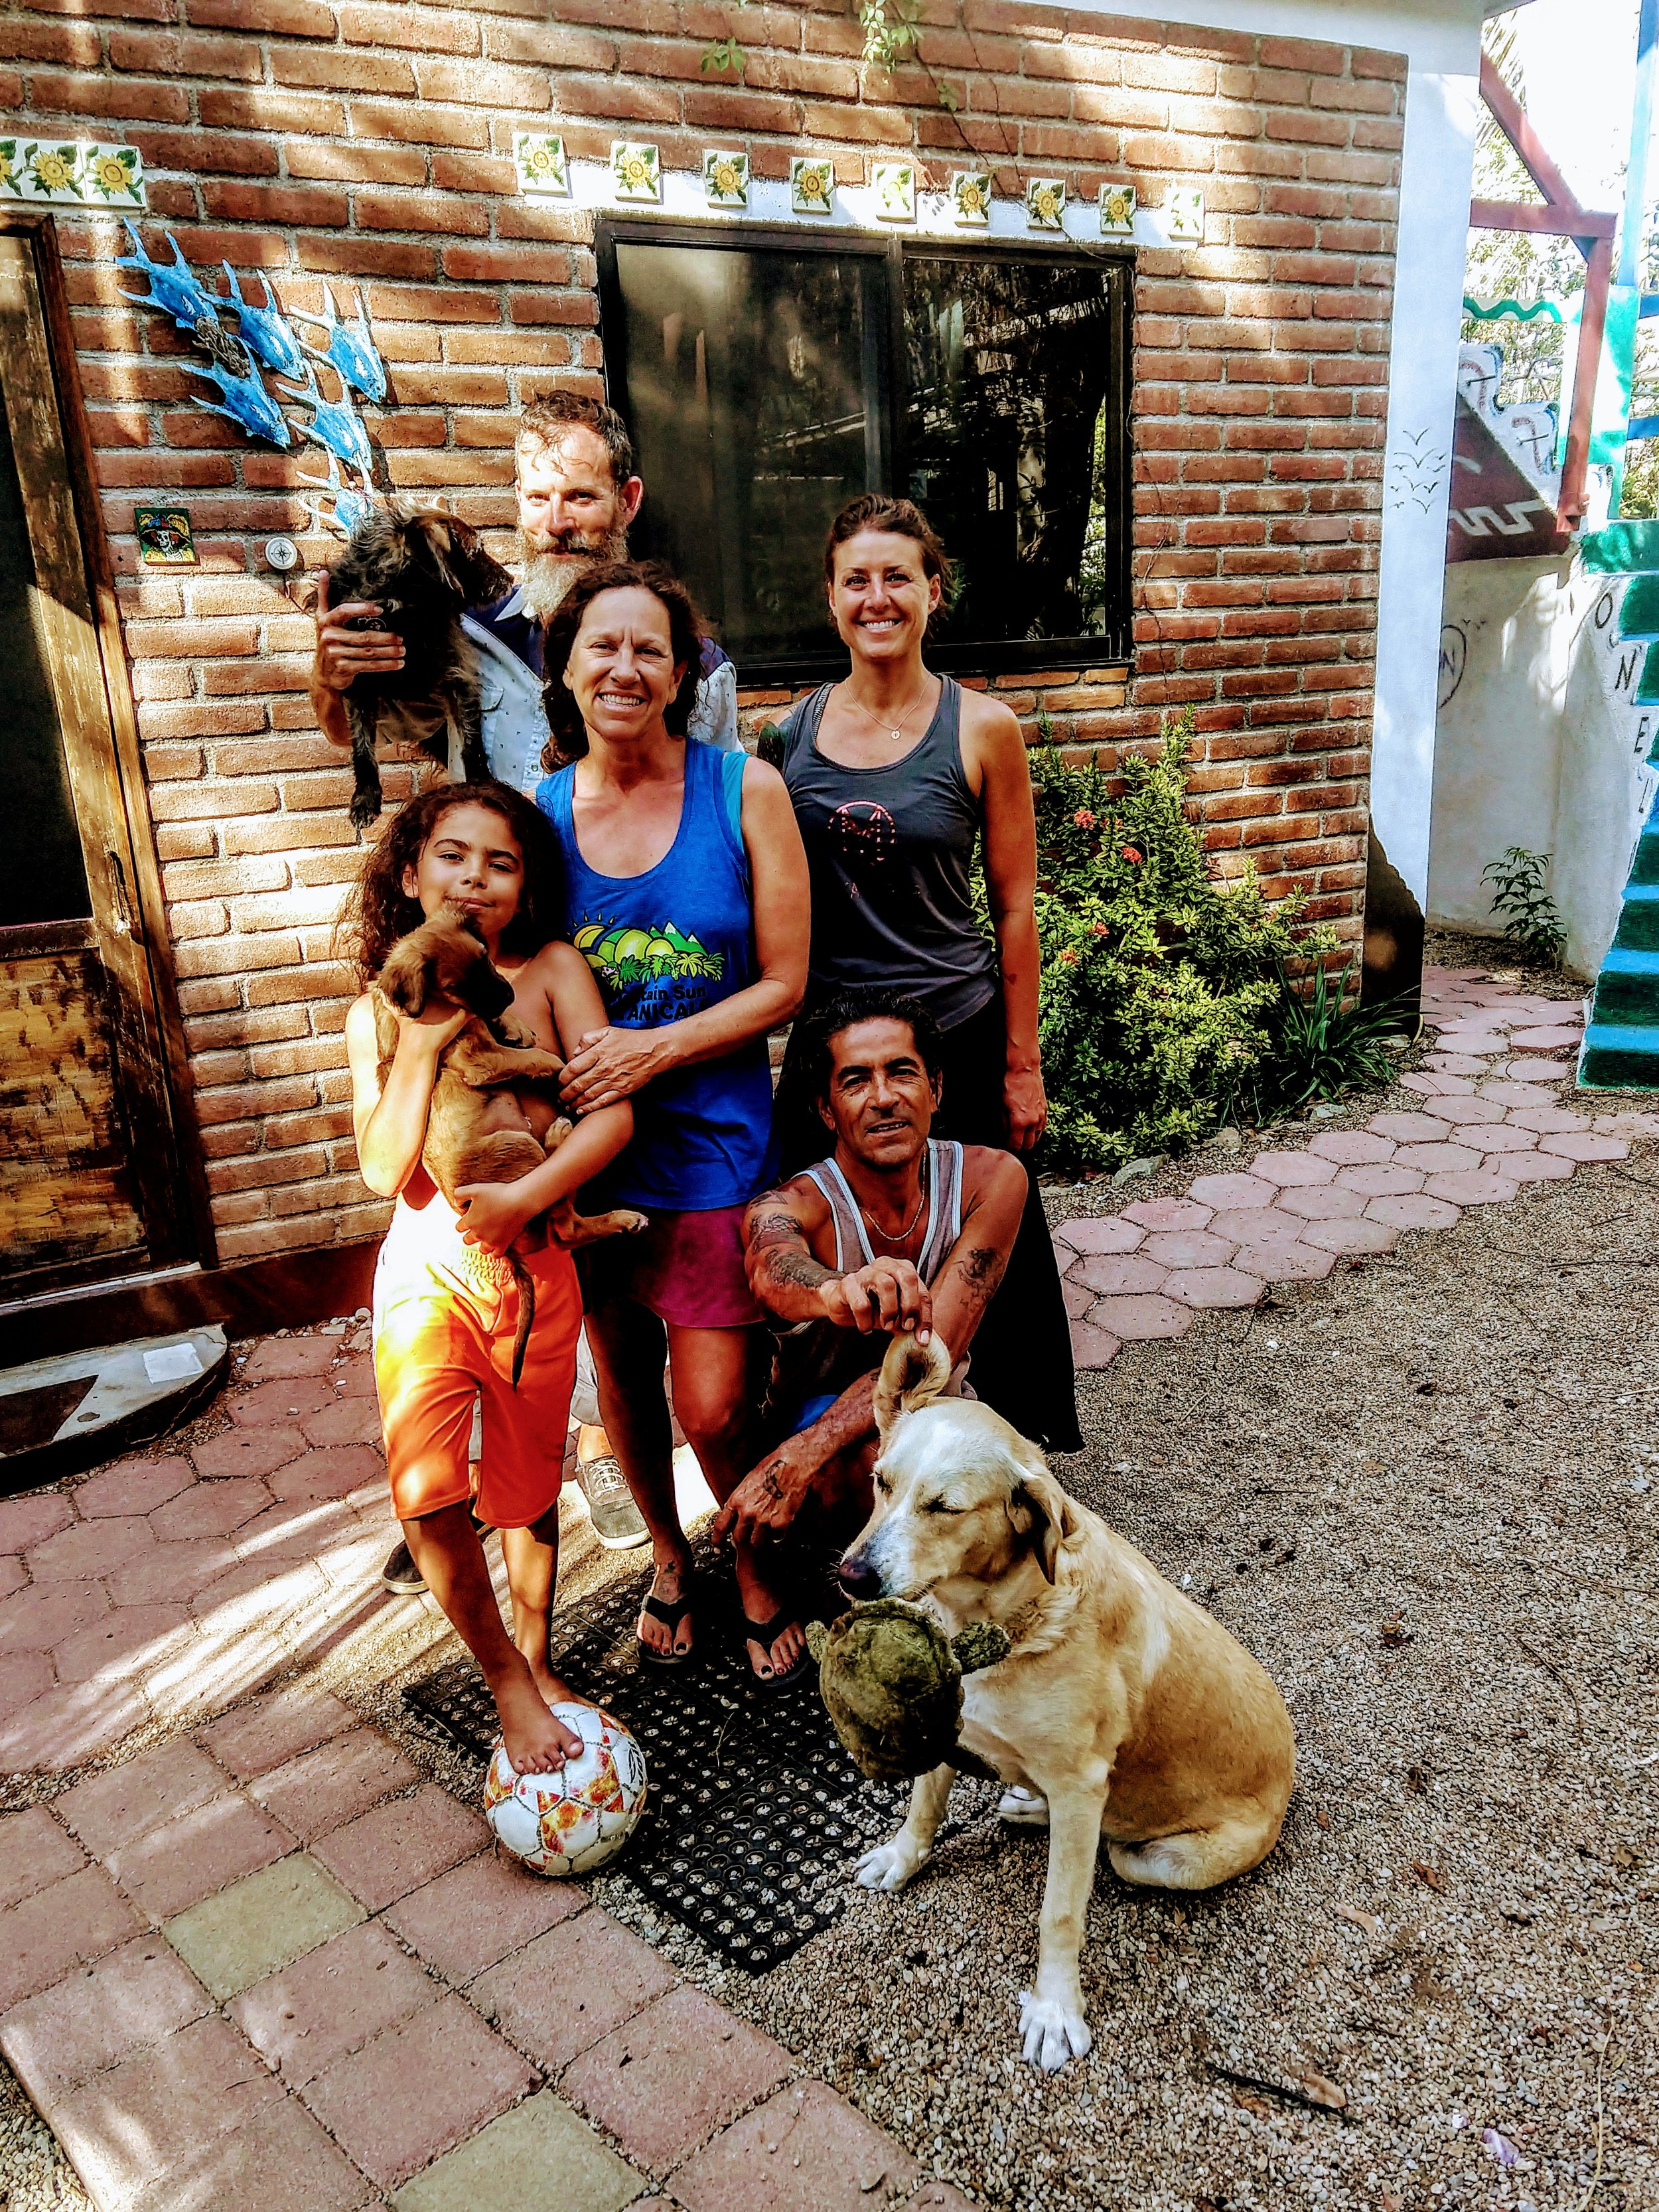 Our hosts in Cabo San Lucas, Laura, Martin, Their son Zion, and their dogs Simba and Arena.